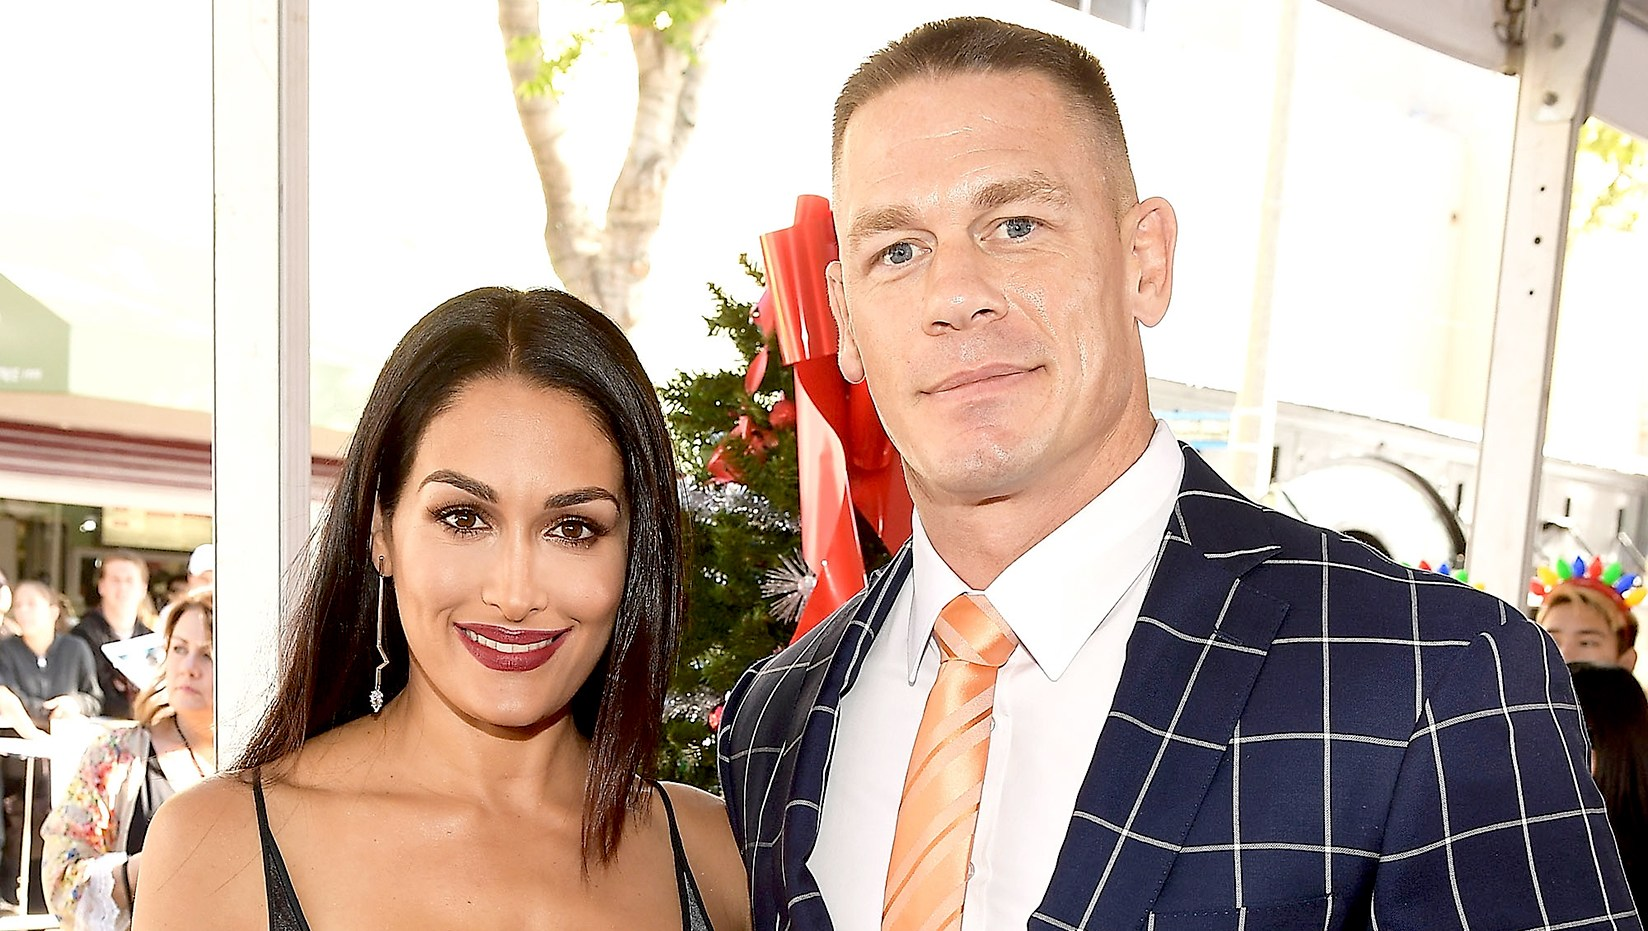 Nikki-Bella-and-John-Cena-wedding-plans